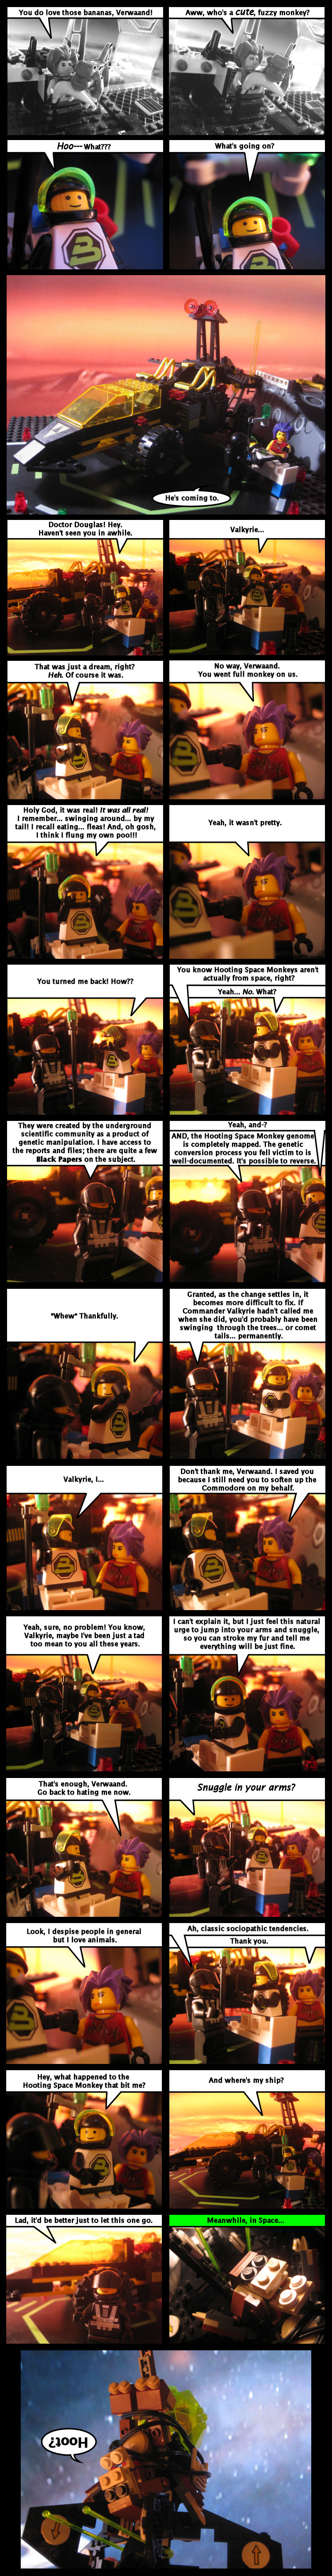 Revenge Of The Hooting Space Monkeys Part 15